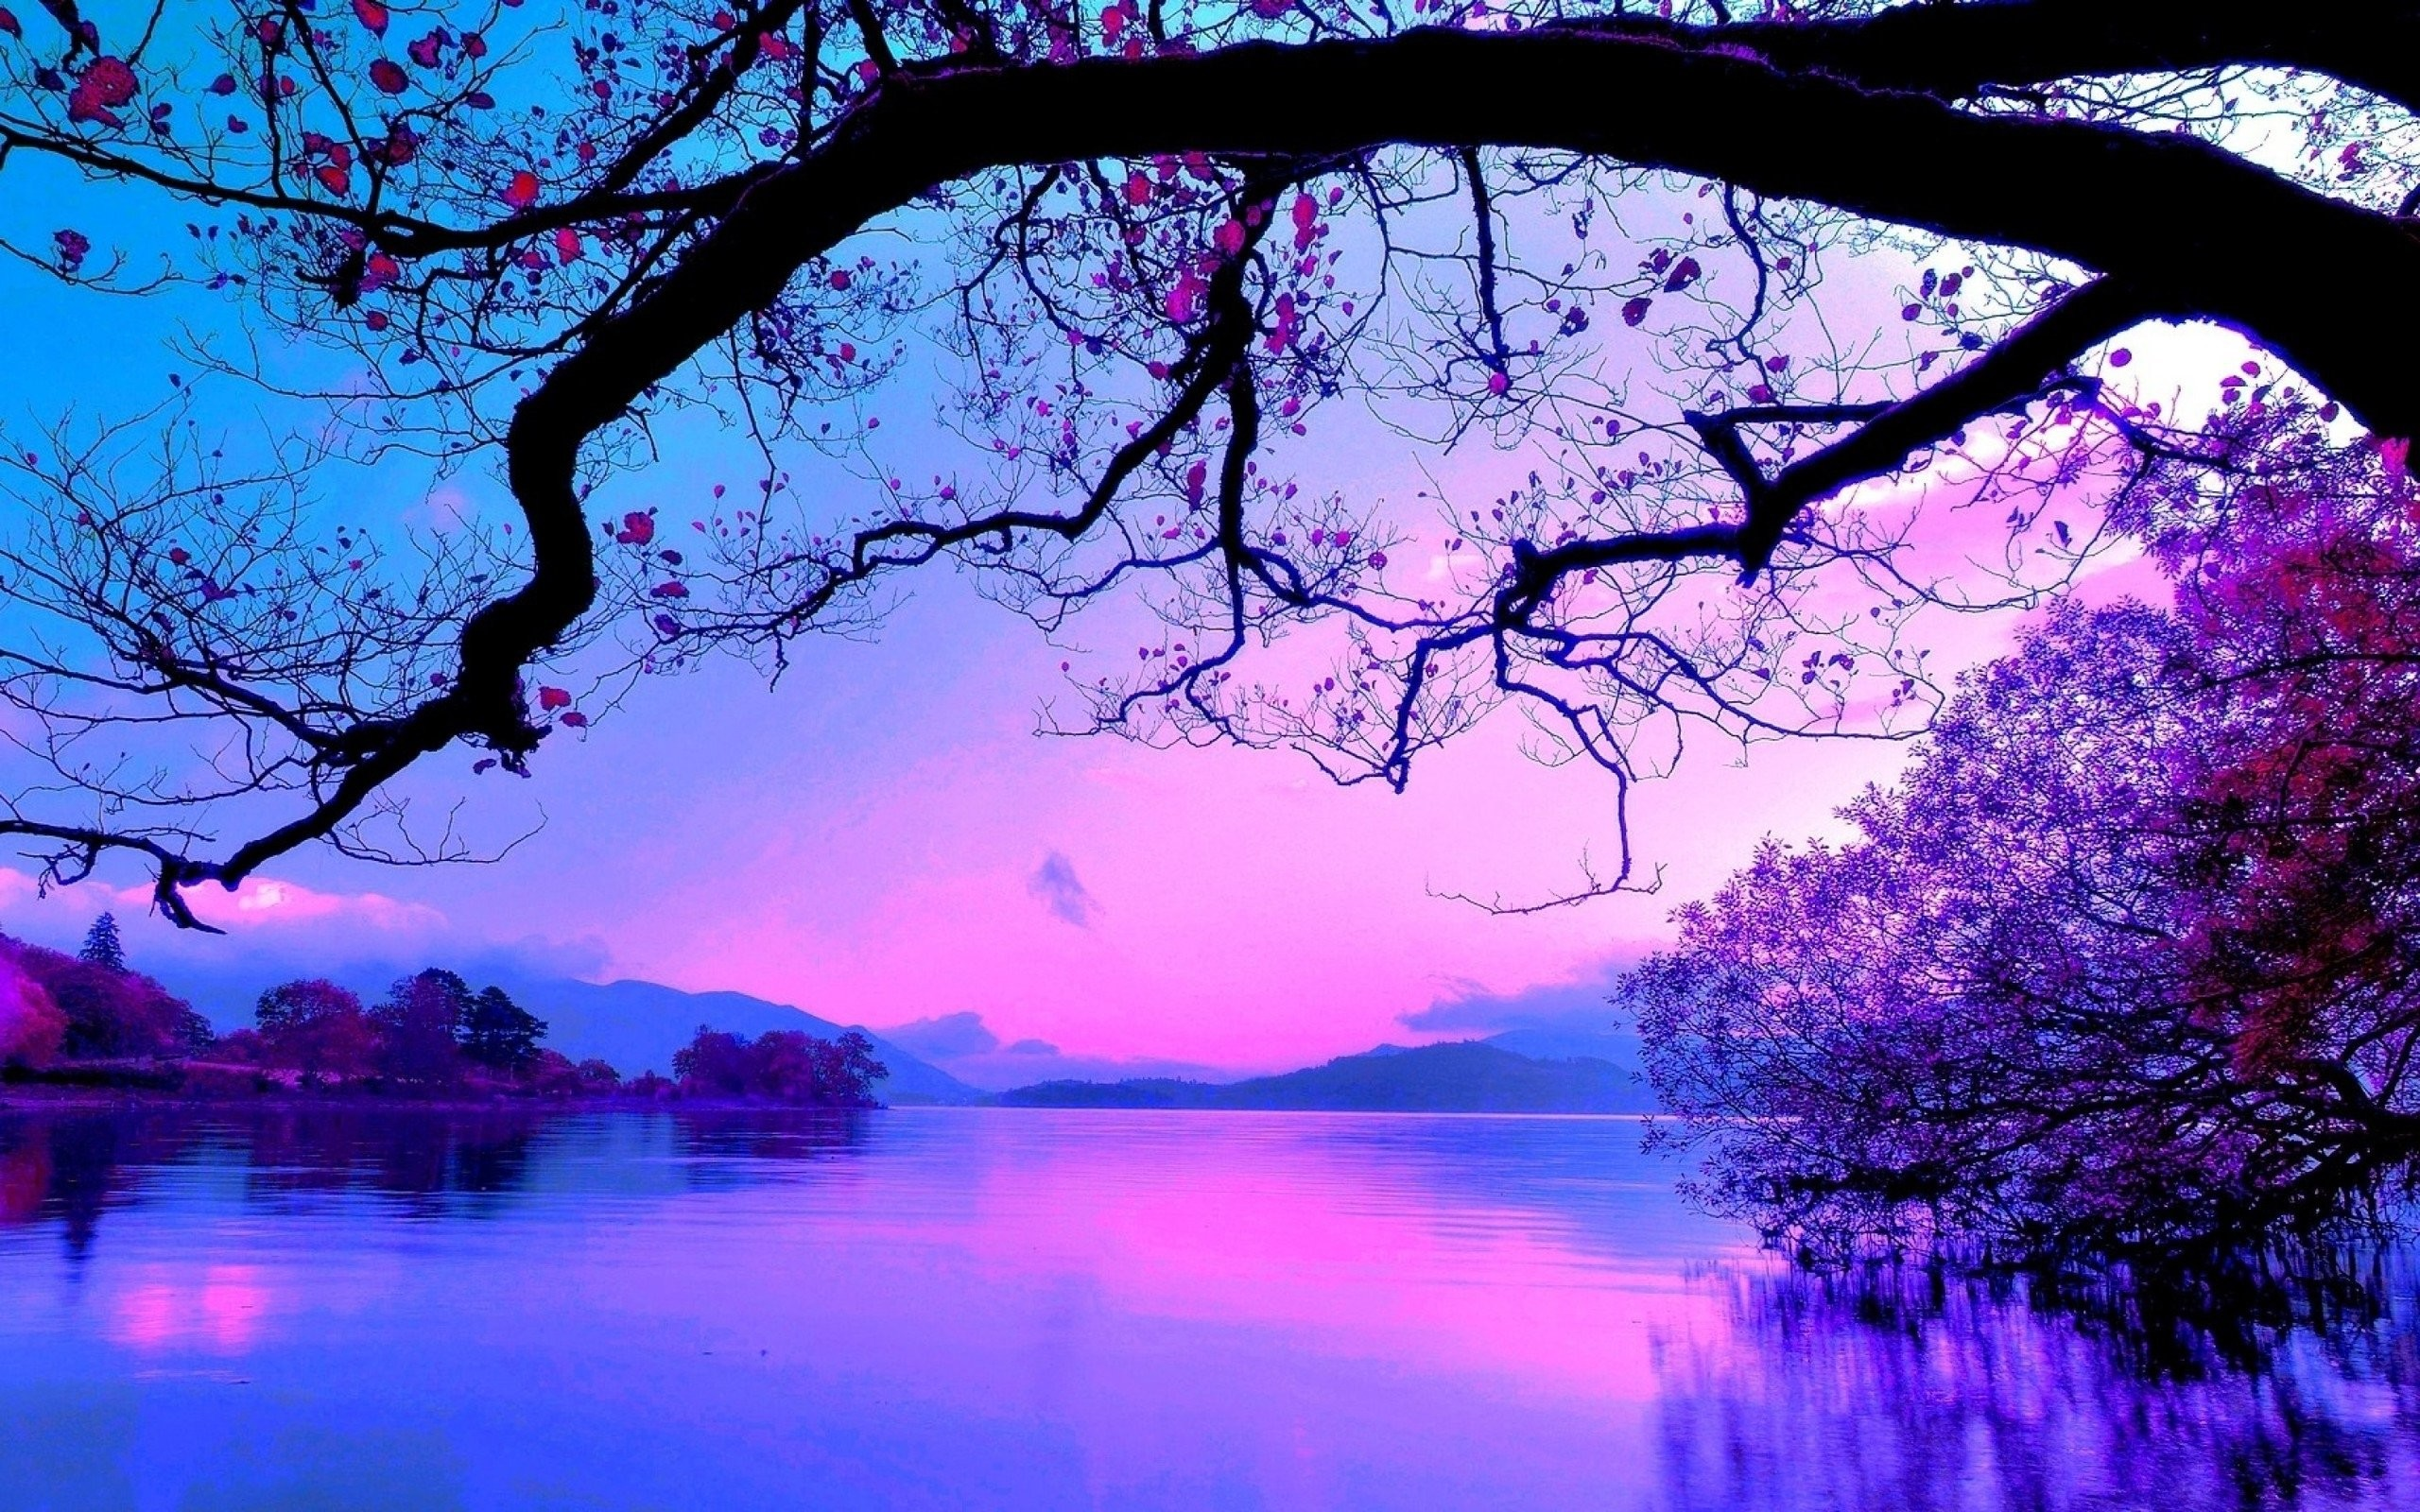 purple sunset tree nature water hd landscape wallpapers beauty background desktop cool 1440 2560 sky plant lake comments imgur cp